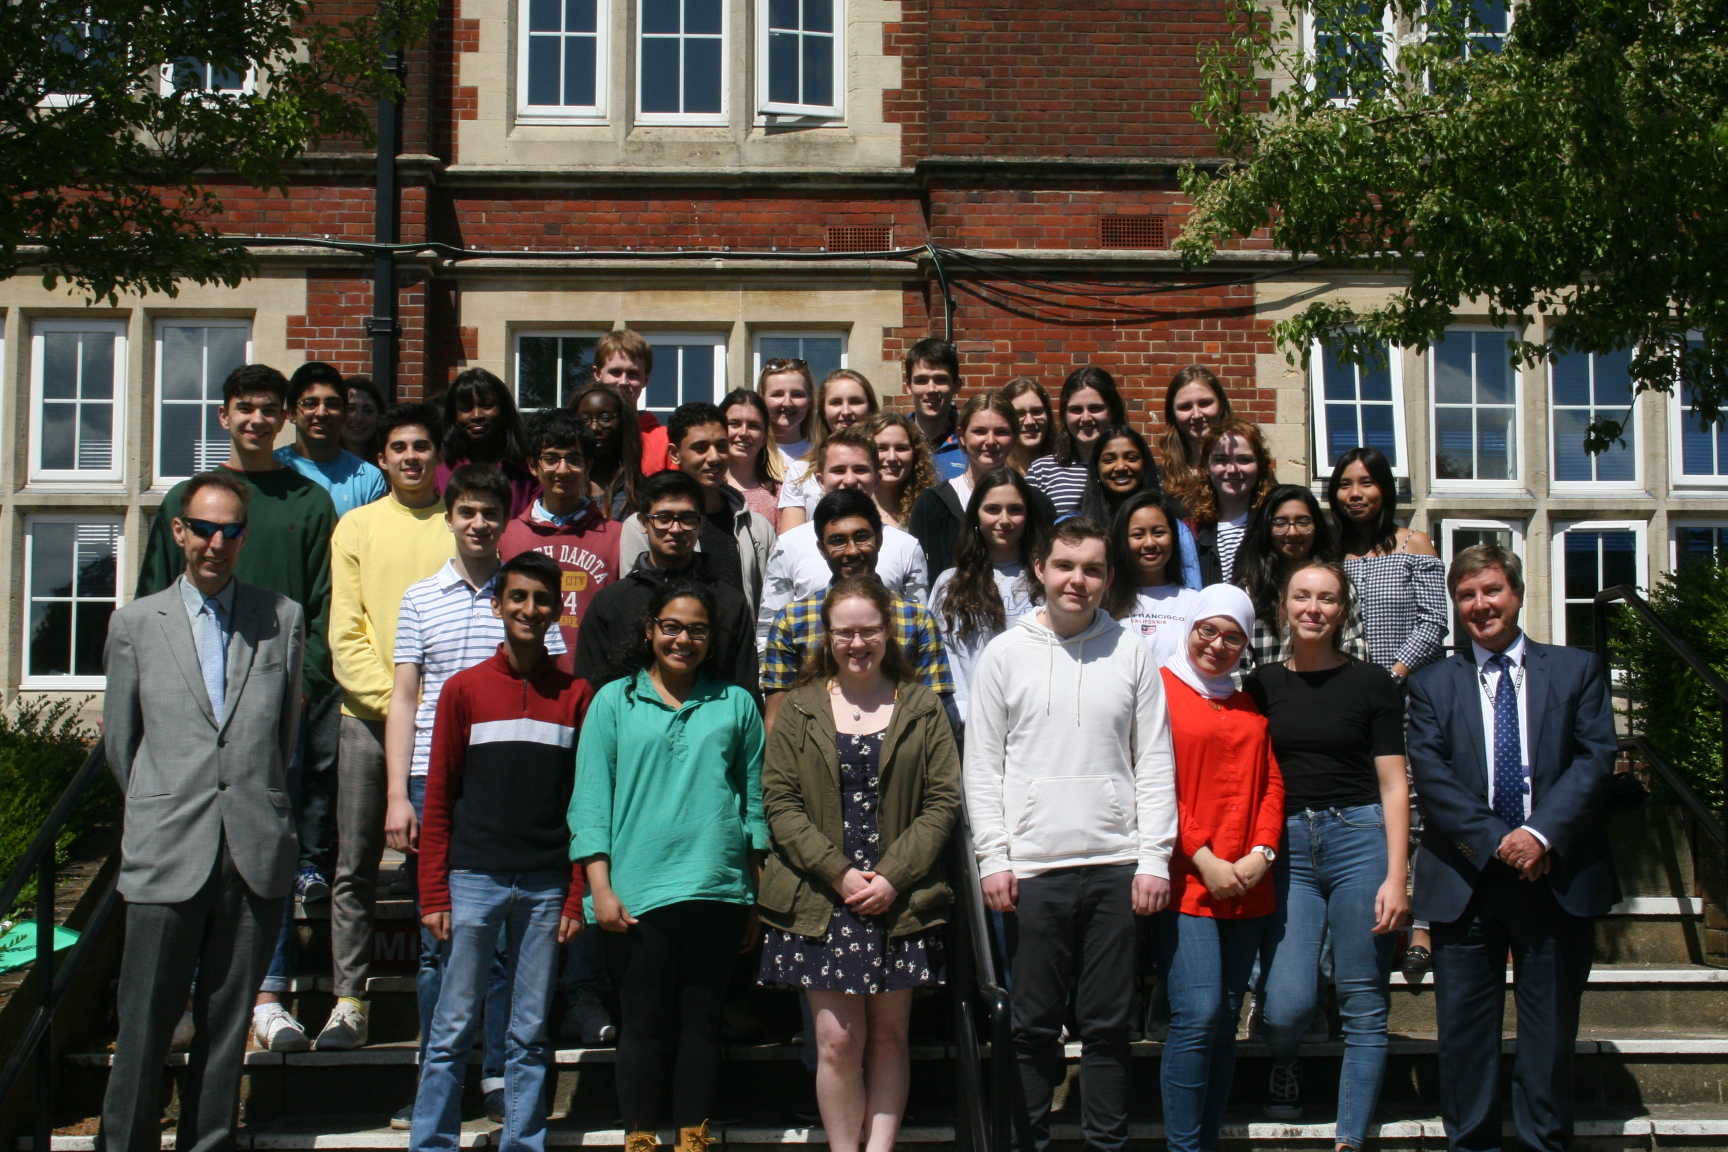 52 students at Peter Symonds College have been offered places to study medicine